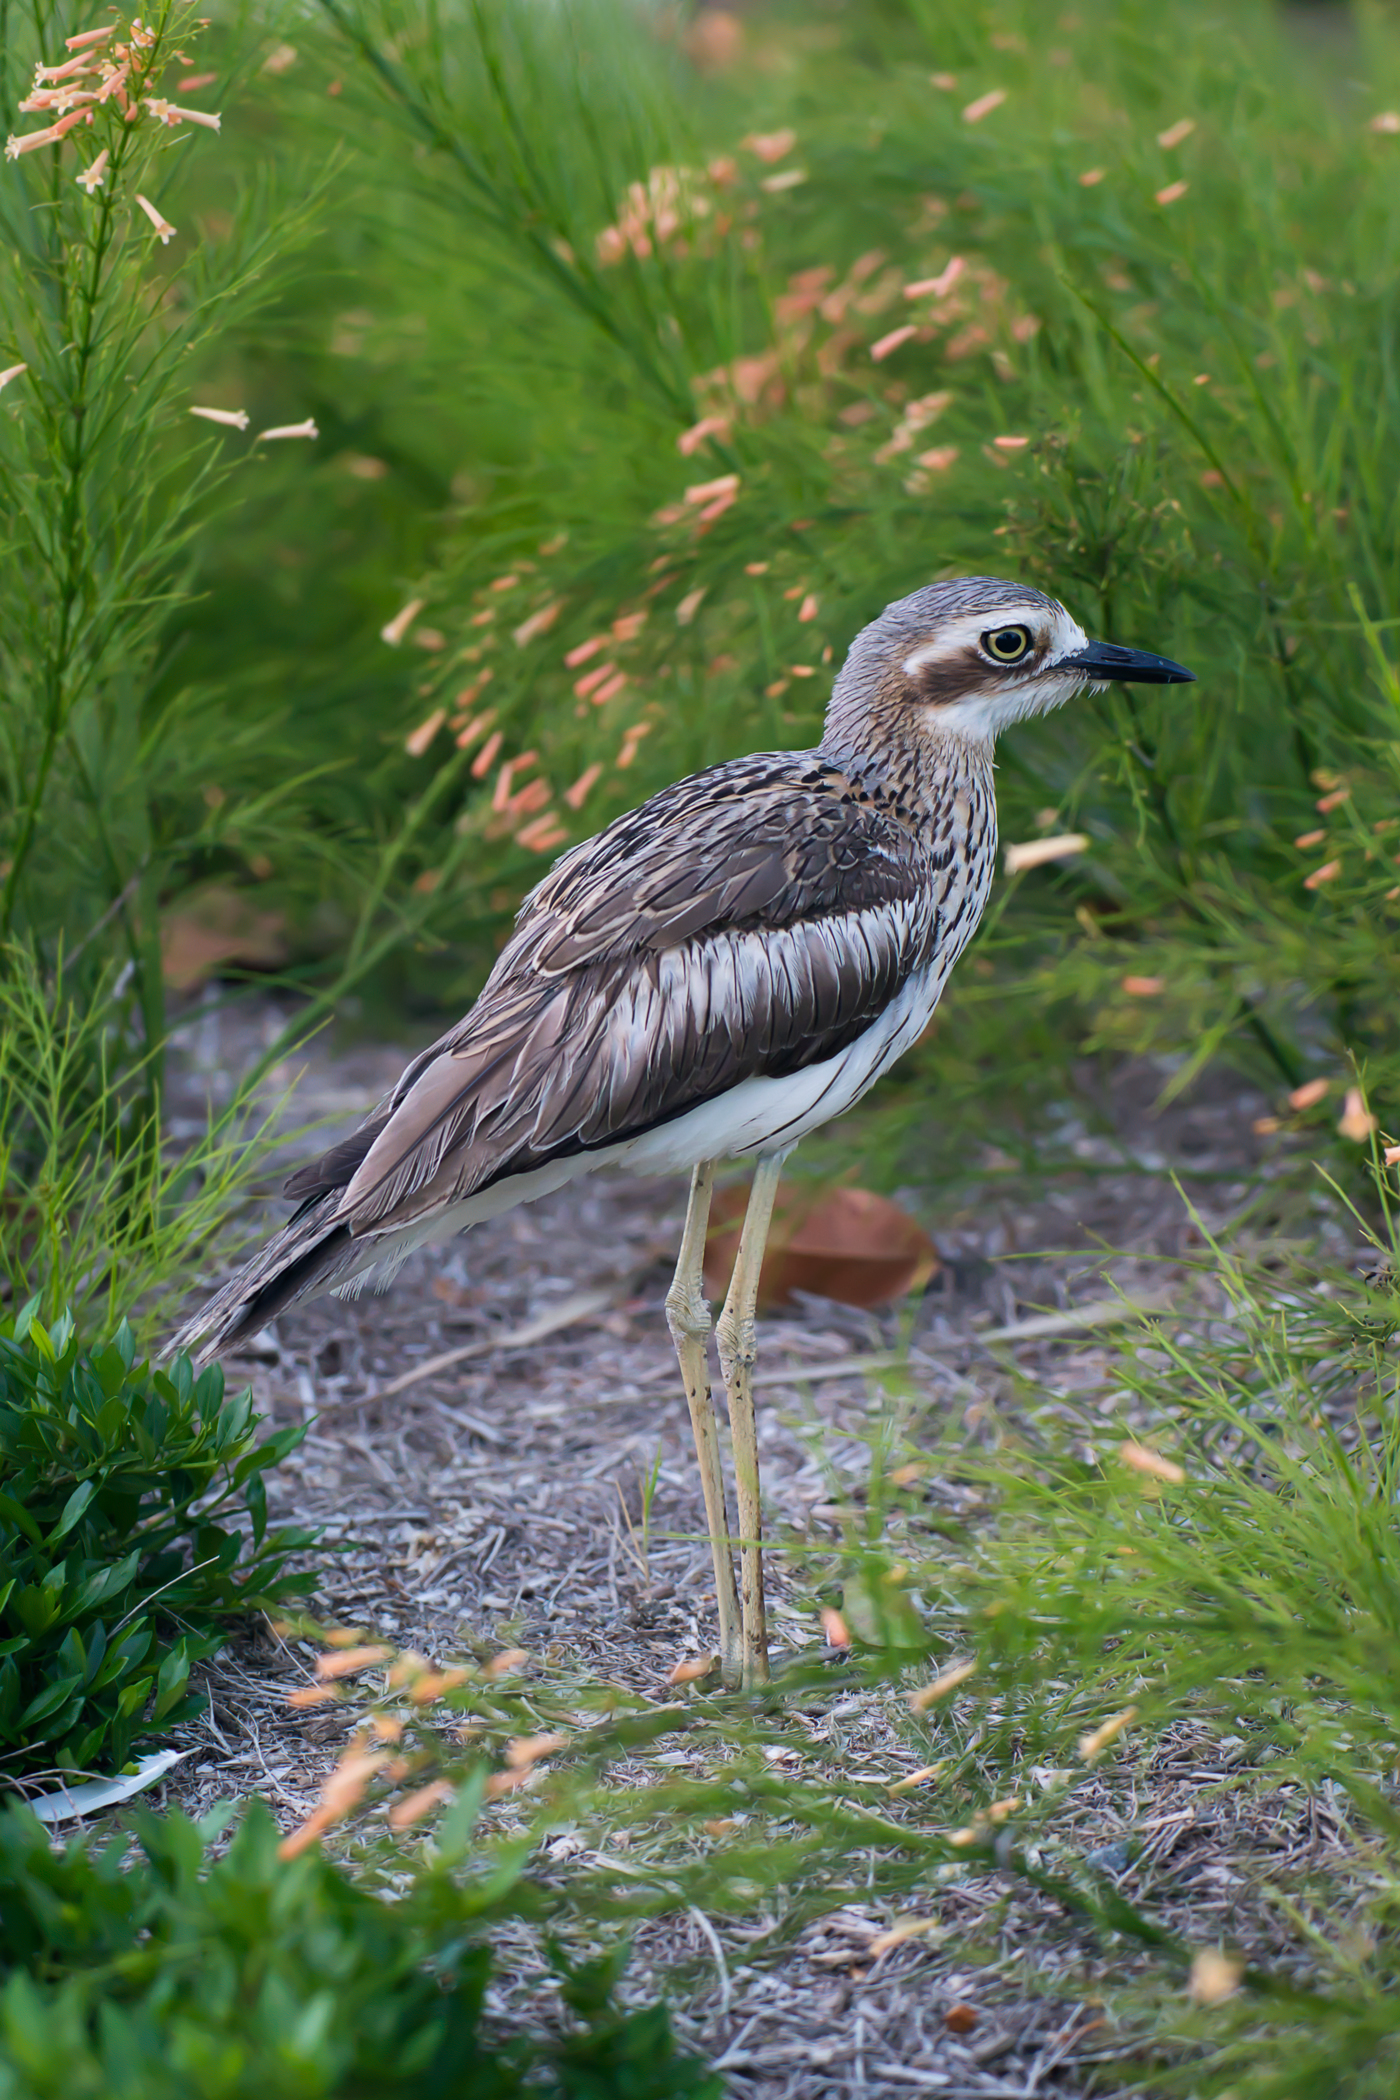 The Bush Stone Curlew are also known as Bush Thick-knee.